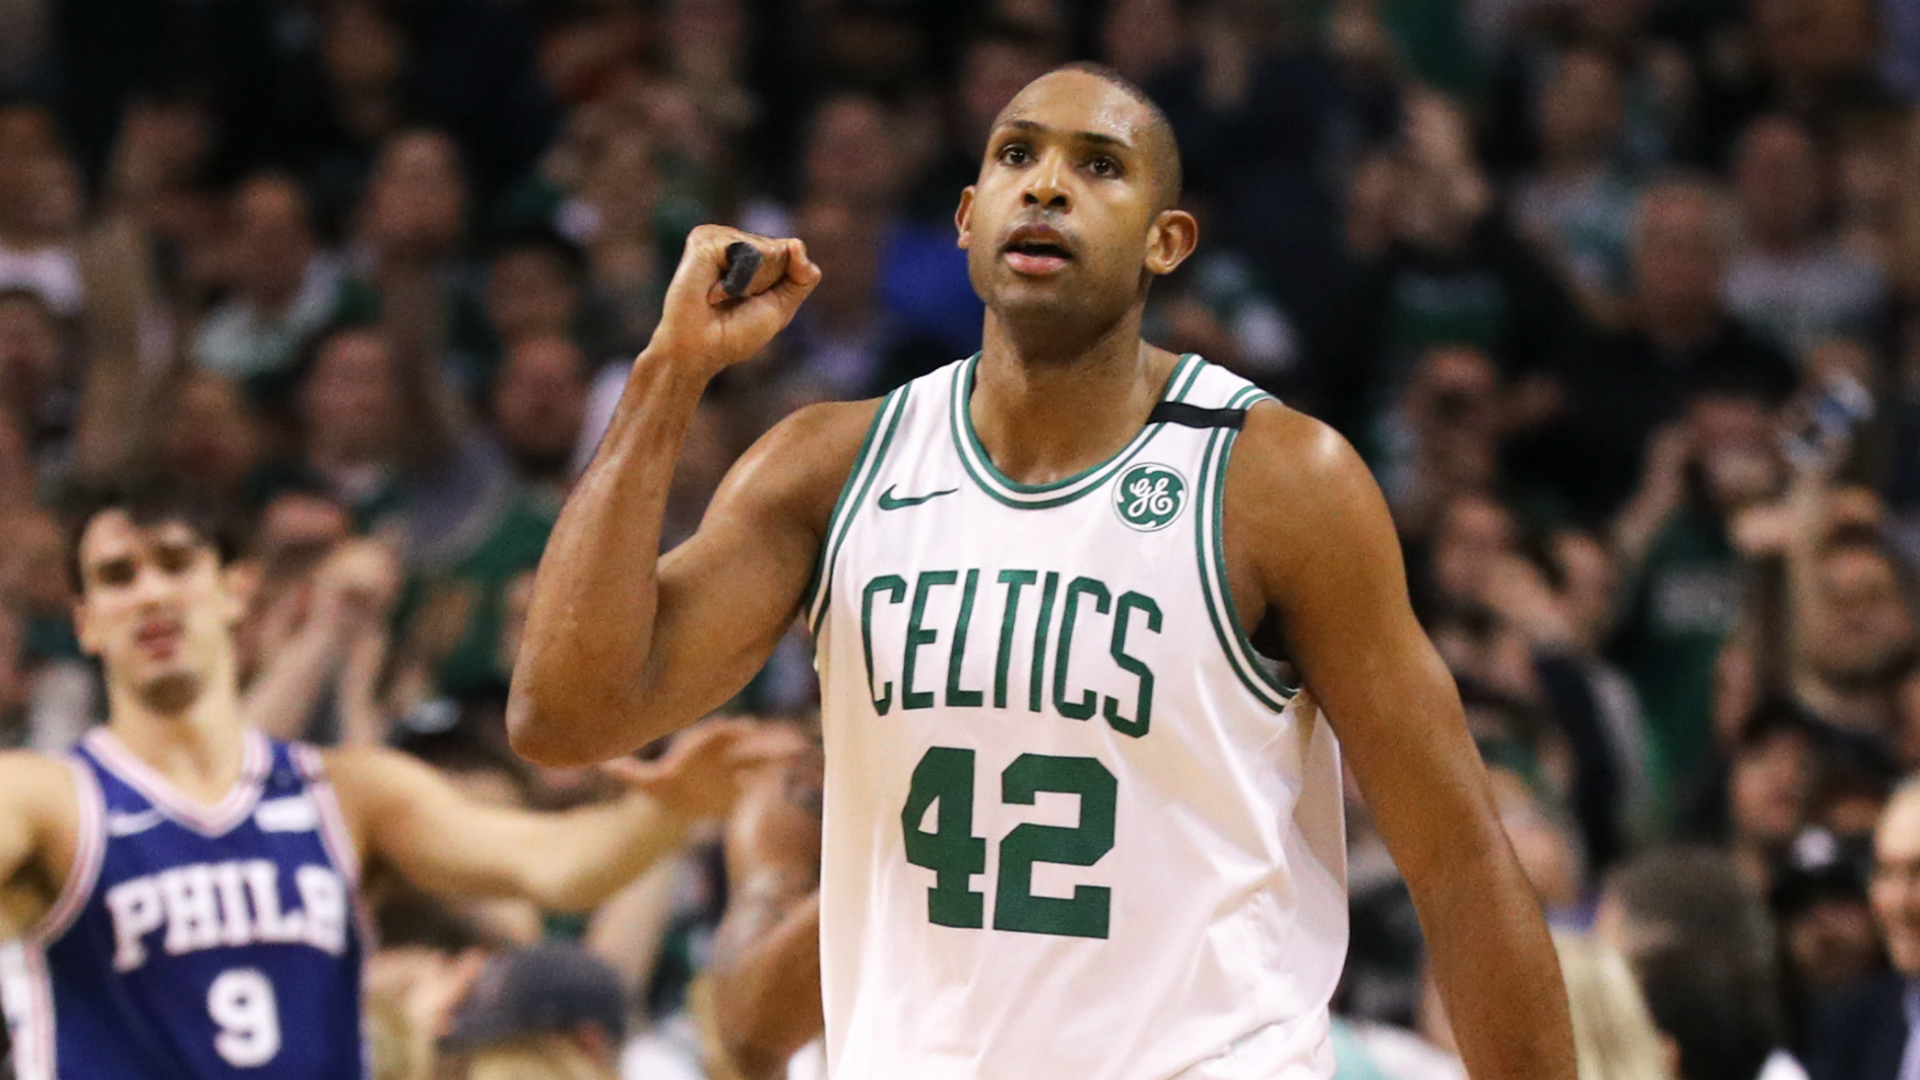 NBA free agency rumors: Al Horford declines Celtics option, hopes to work out new deal